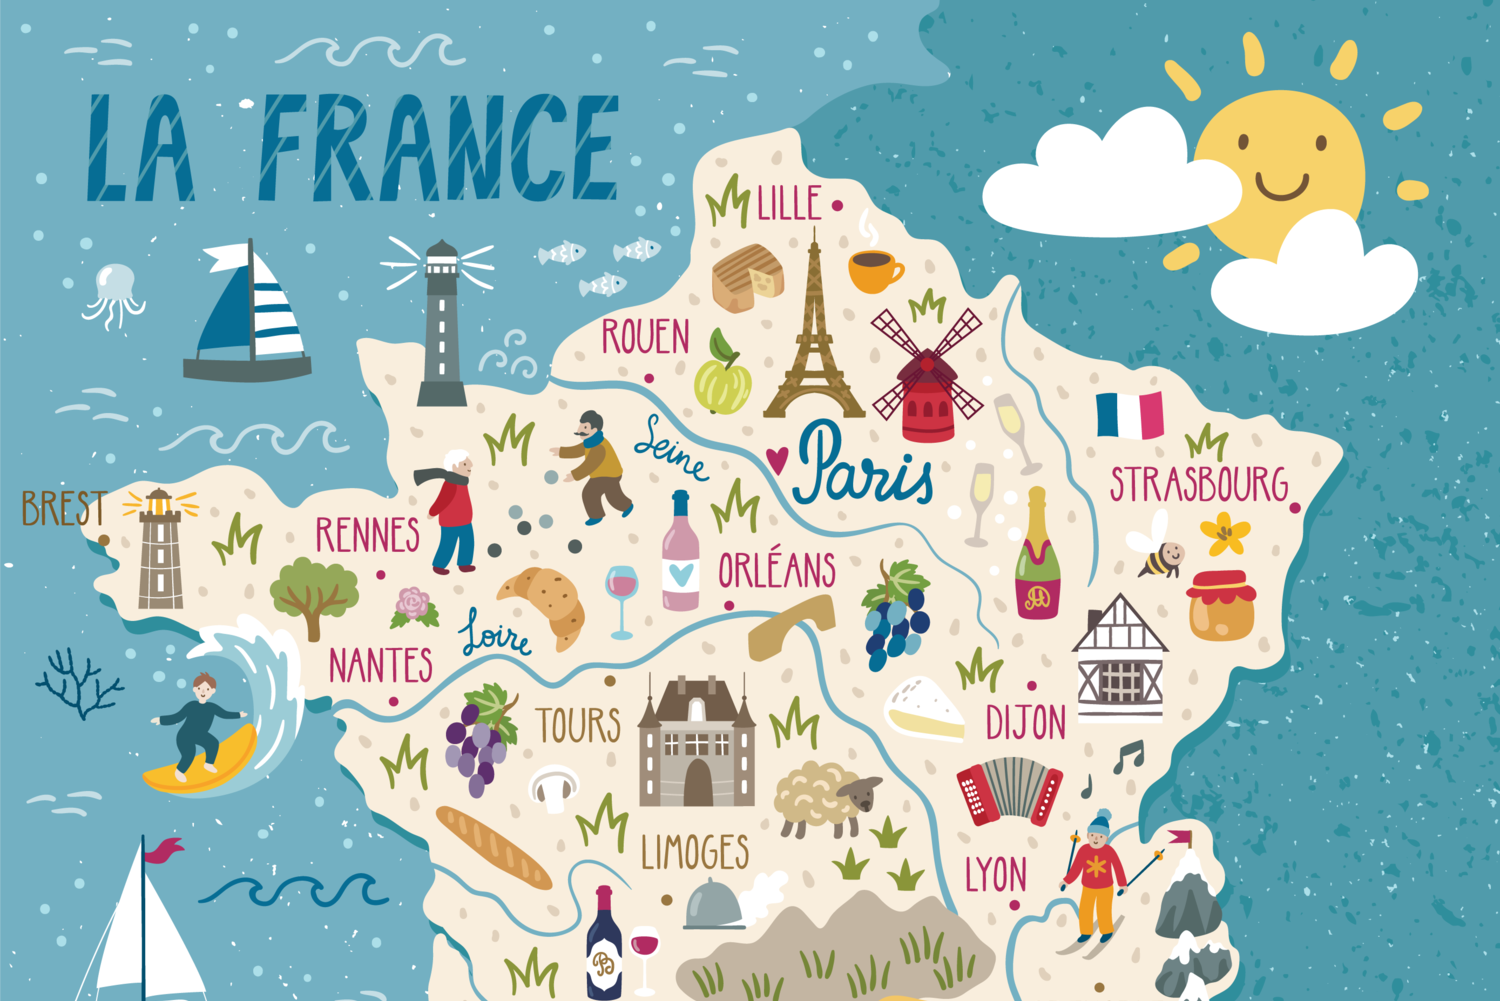 A map of France